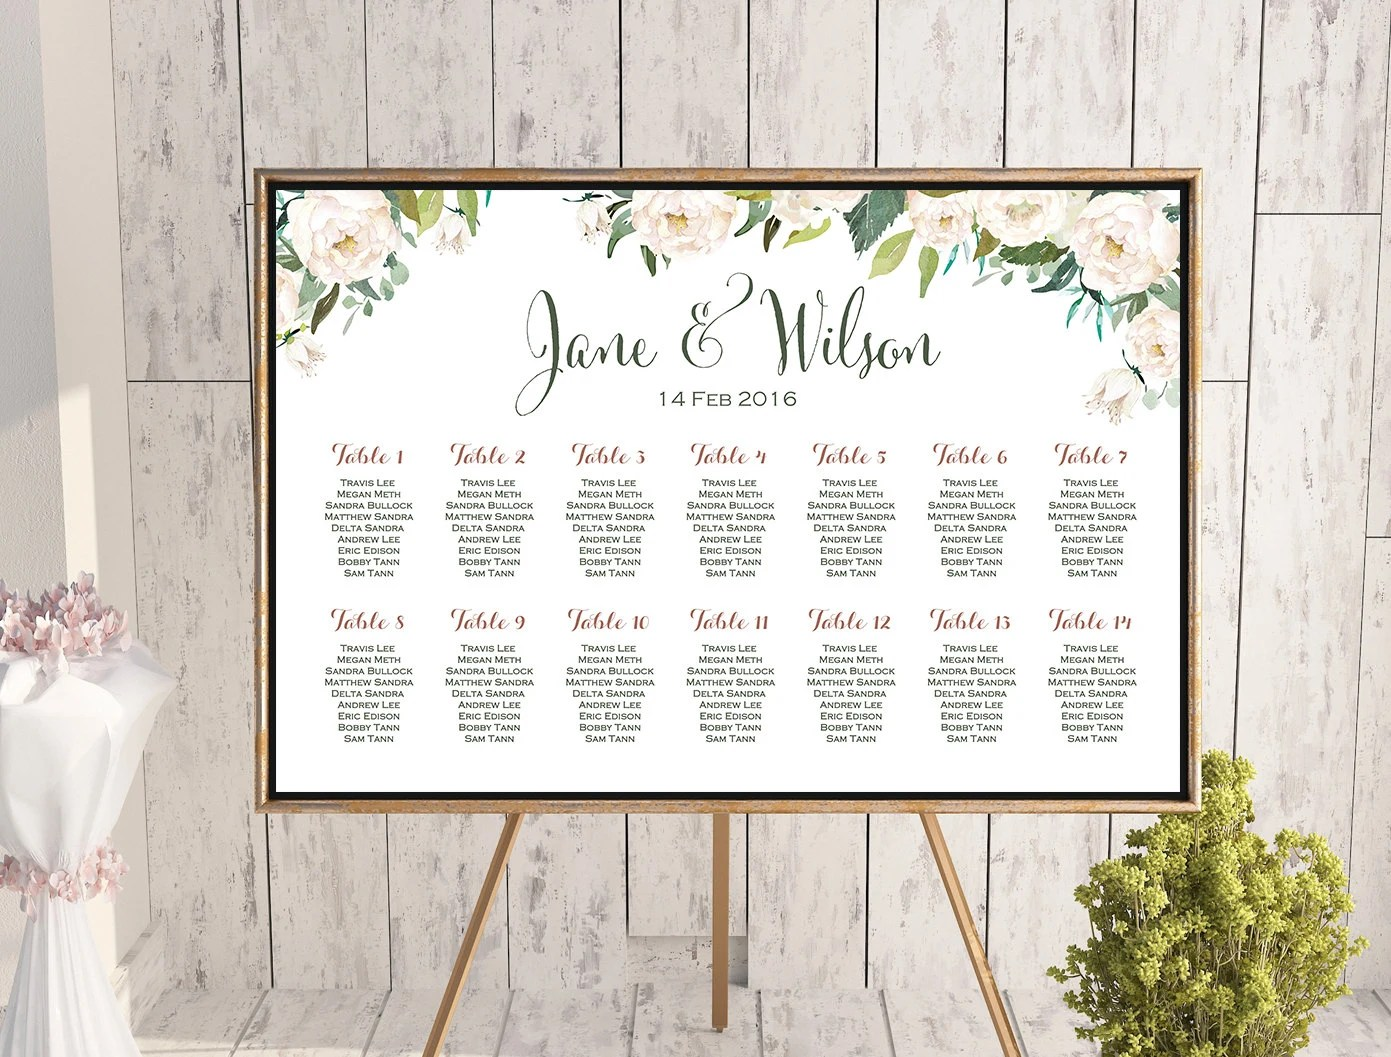 Wedding seating chart white ivory flower printable custom poster sign board th dd wc also invitation templates etsy au rh